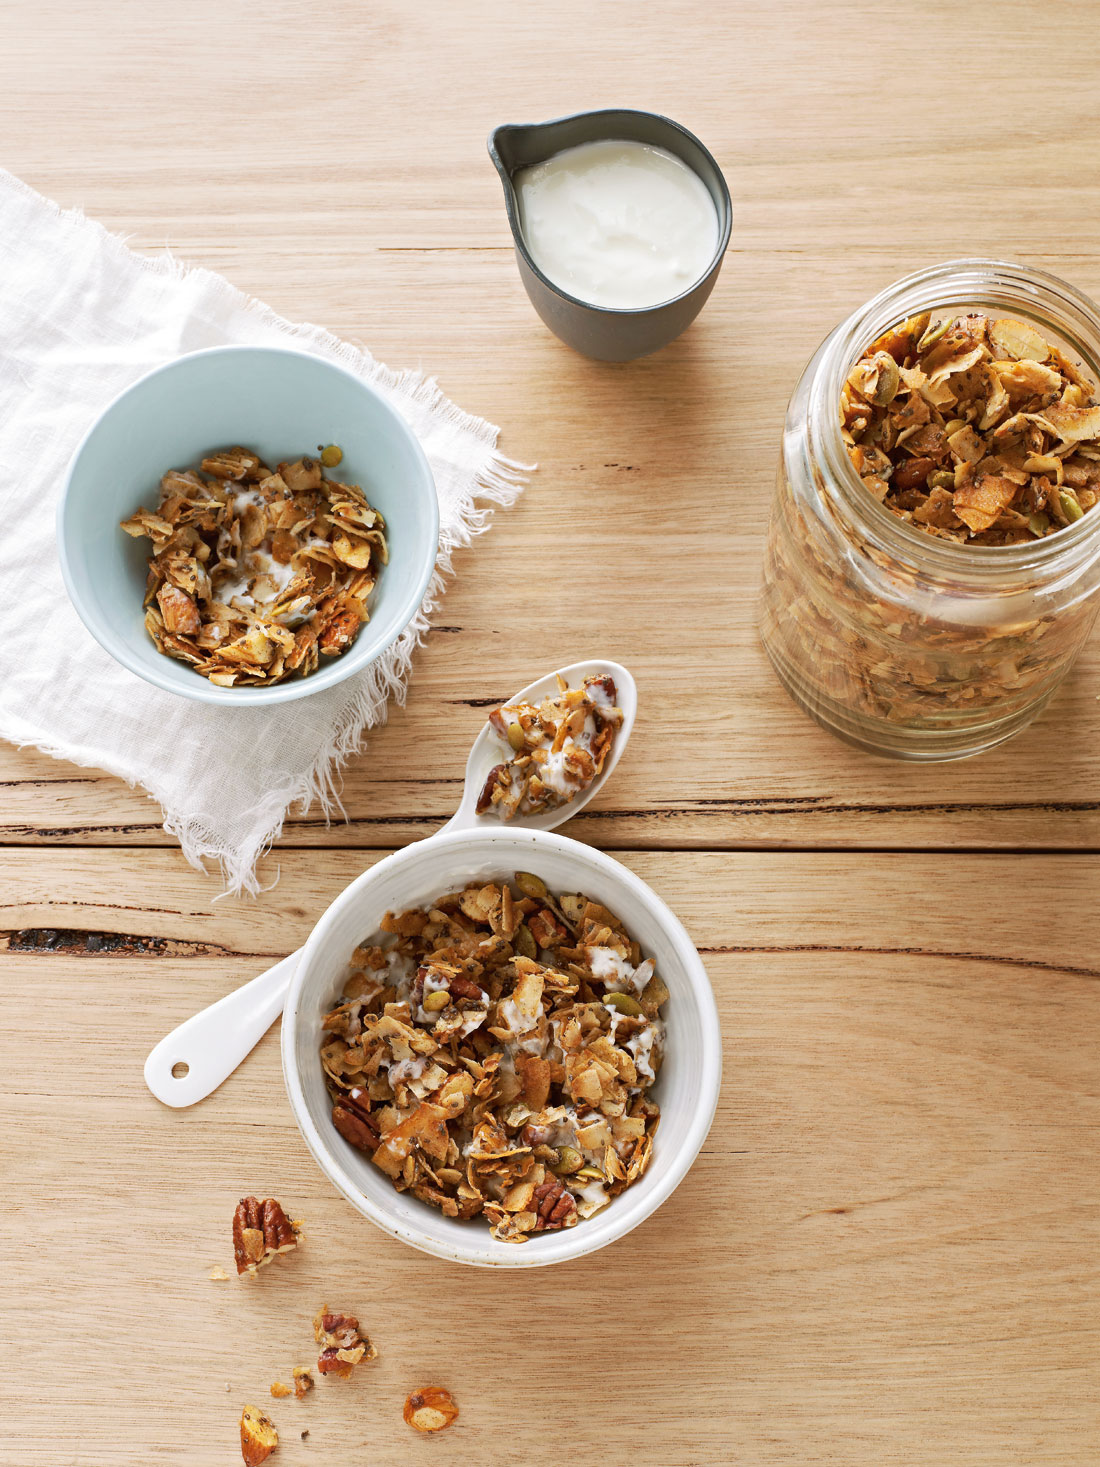 Coco nutty granola recipe sbs food share image forumfinder Choice Image